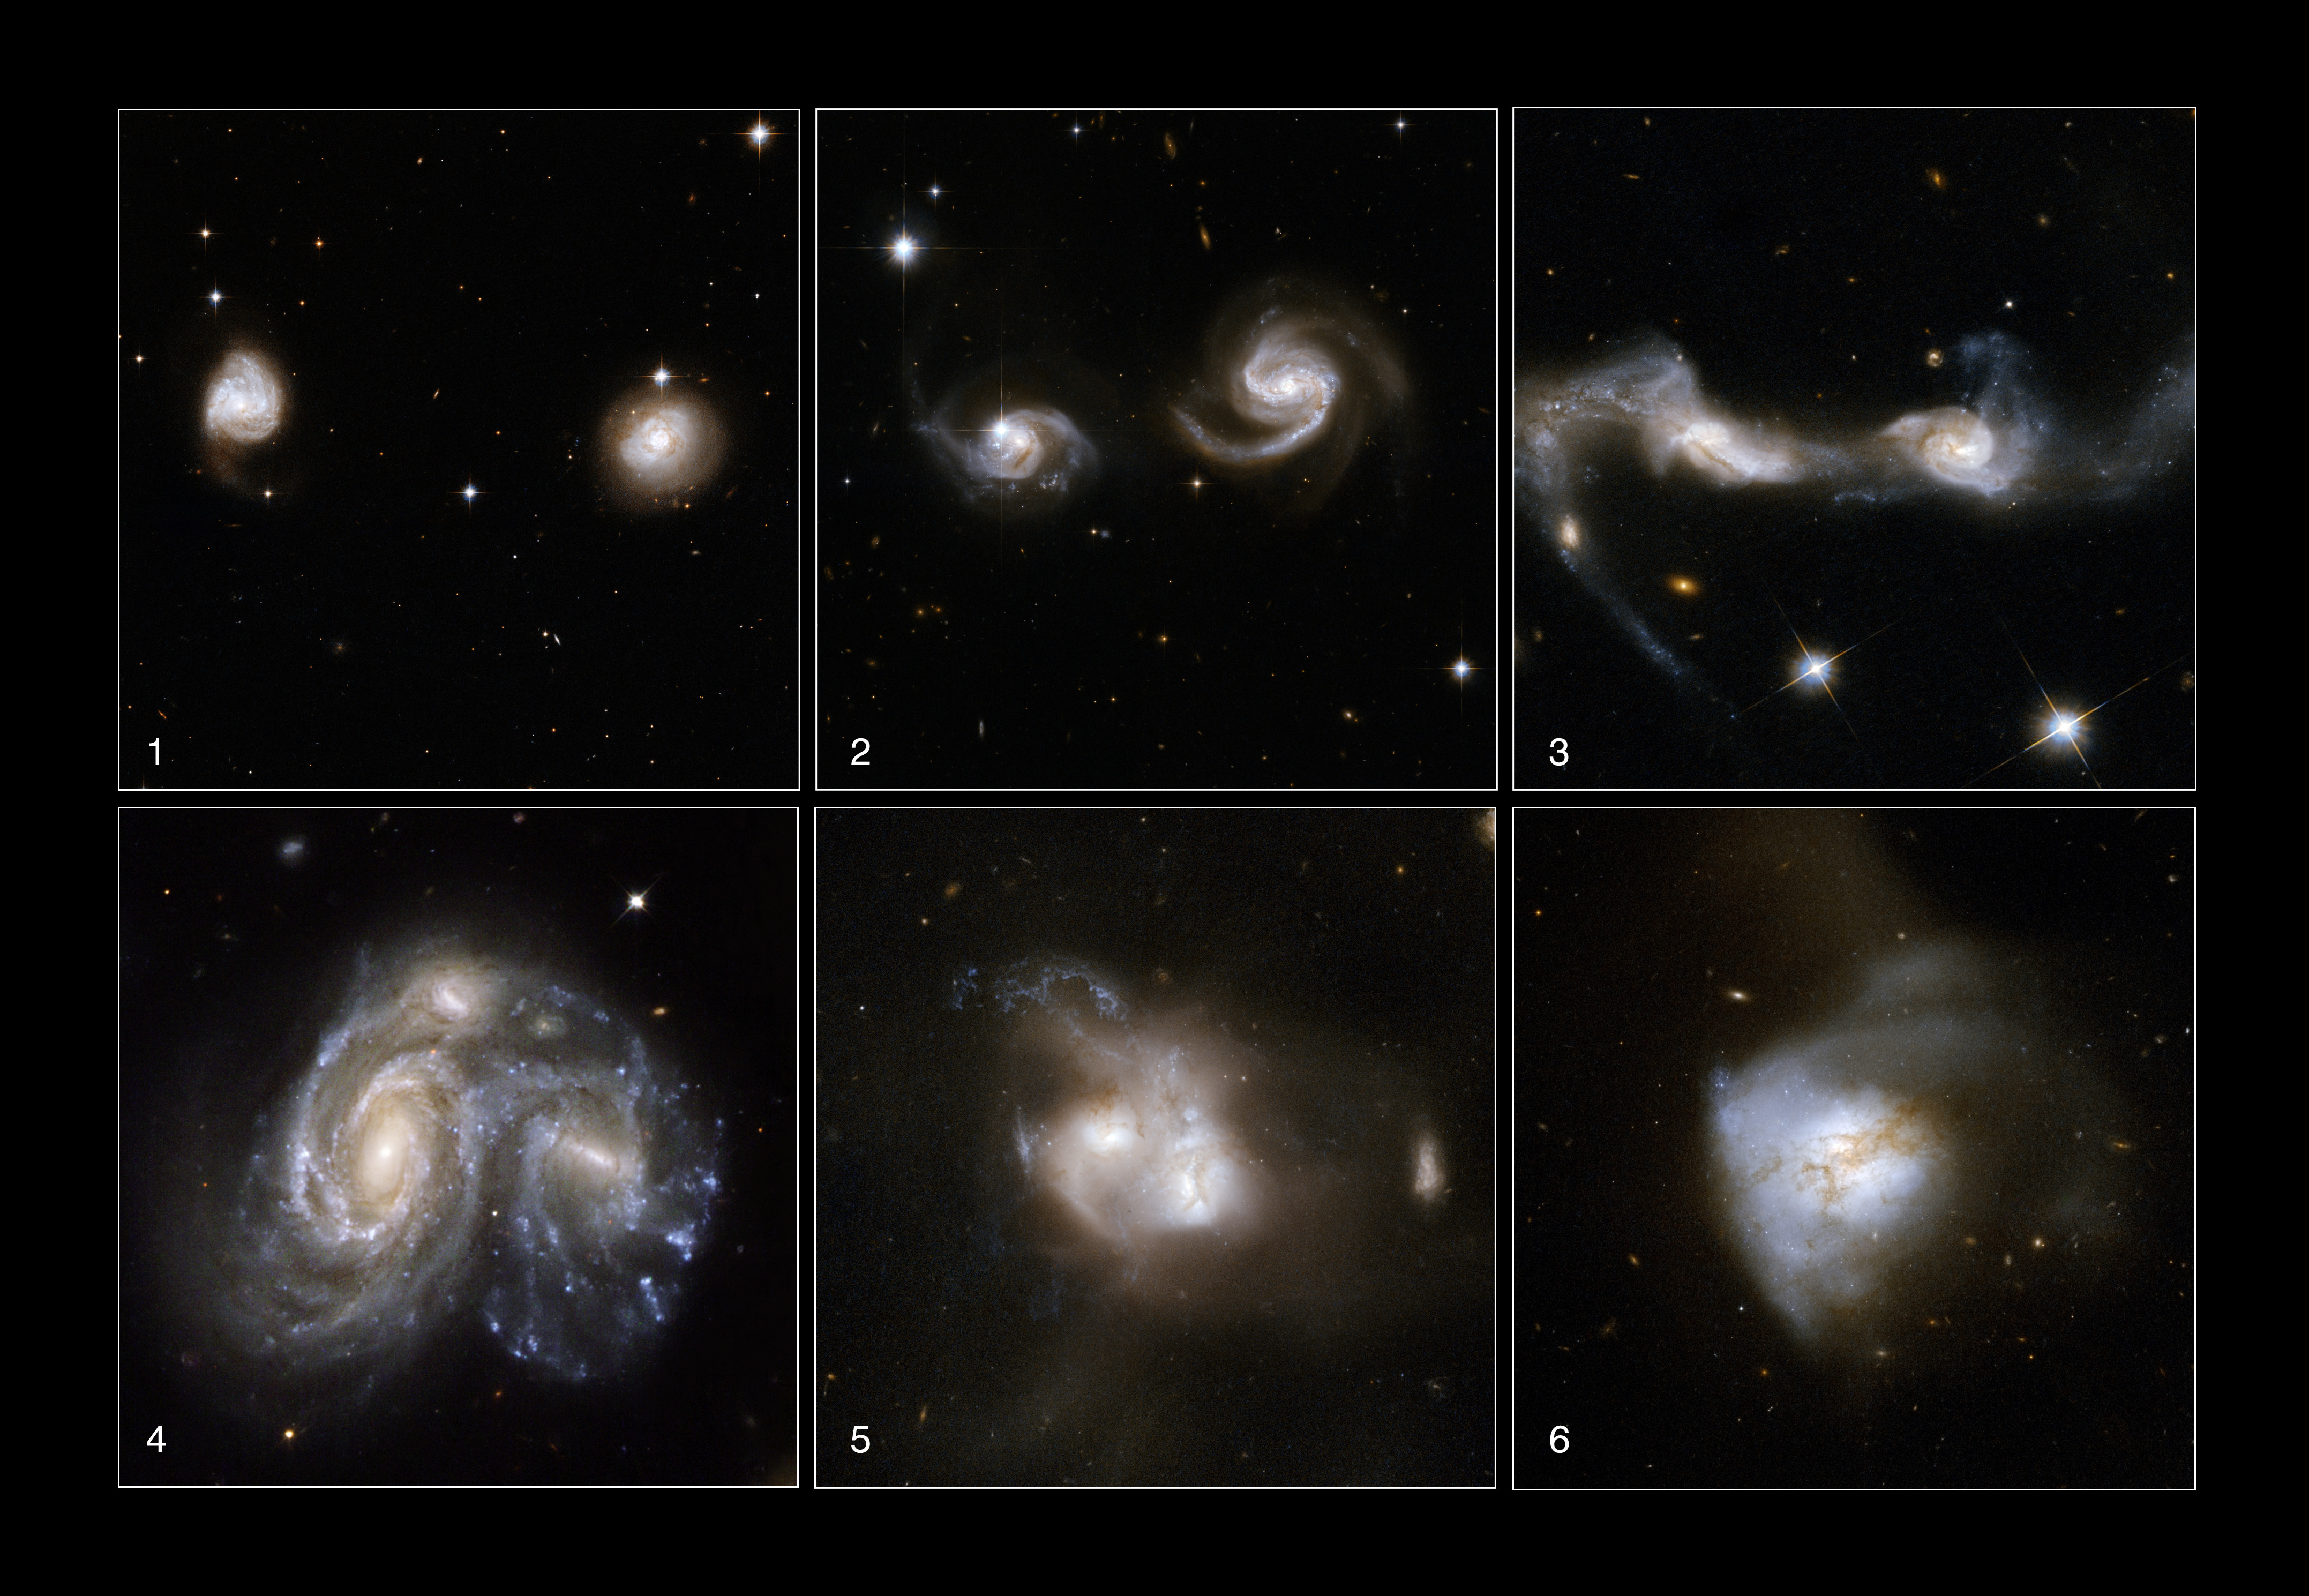 the three types of galaxies Galaxy - types of galaxies: almost all current systems of galaxy classification are outgrowths of the initial scheme proposed by the american astronomer edwin hubble in 1926 in hubble's scheme, which is based on the optical appearance of galaxy images on photographic plates, galaxies are divided into three general classes: ellipticals, spirals, and irregulars.